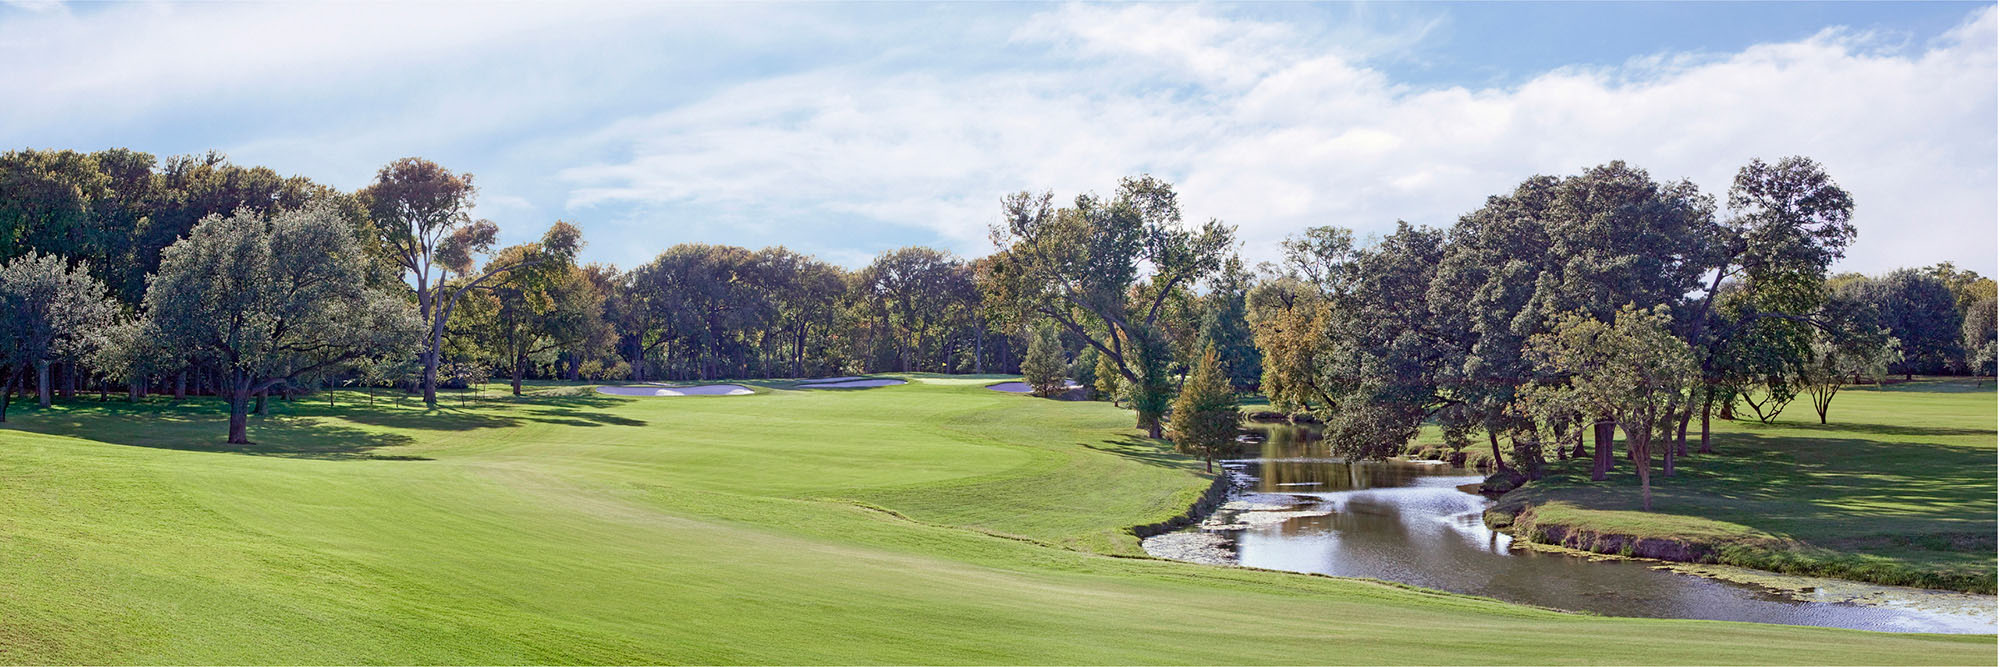 Golf Course Image - Shady Oaks Country Club No. 14